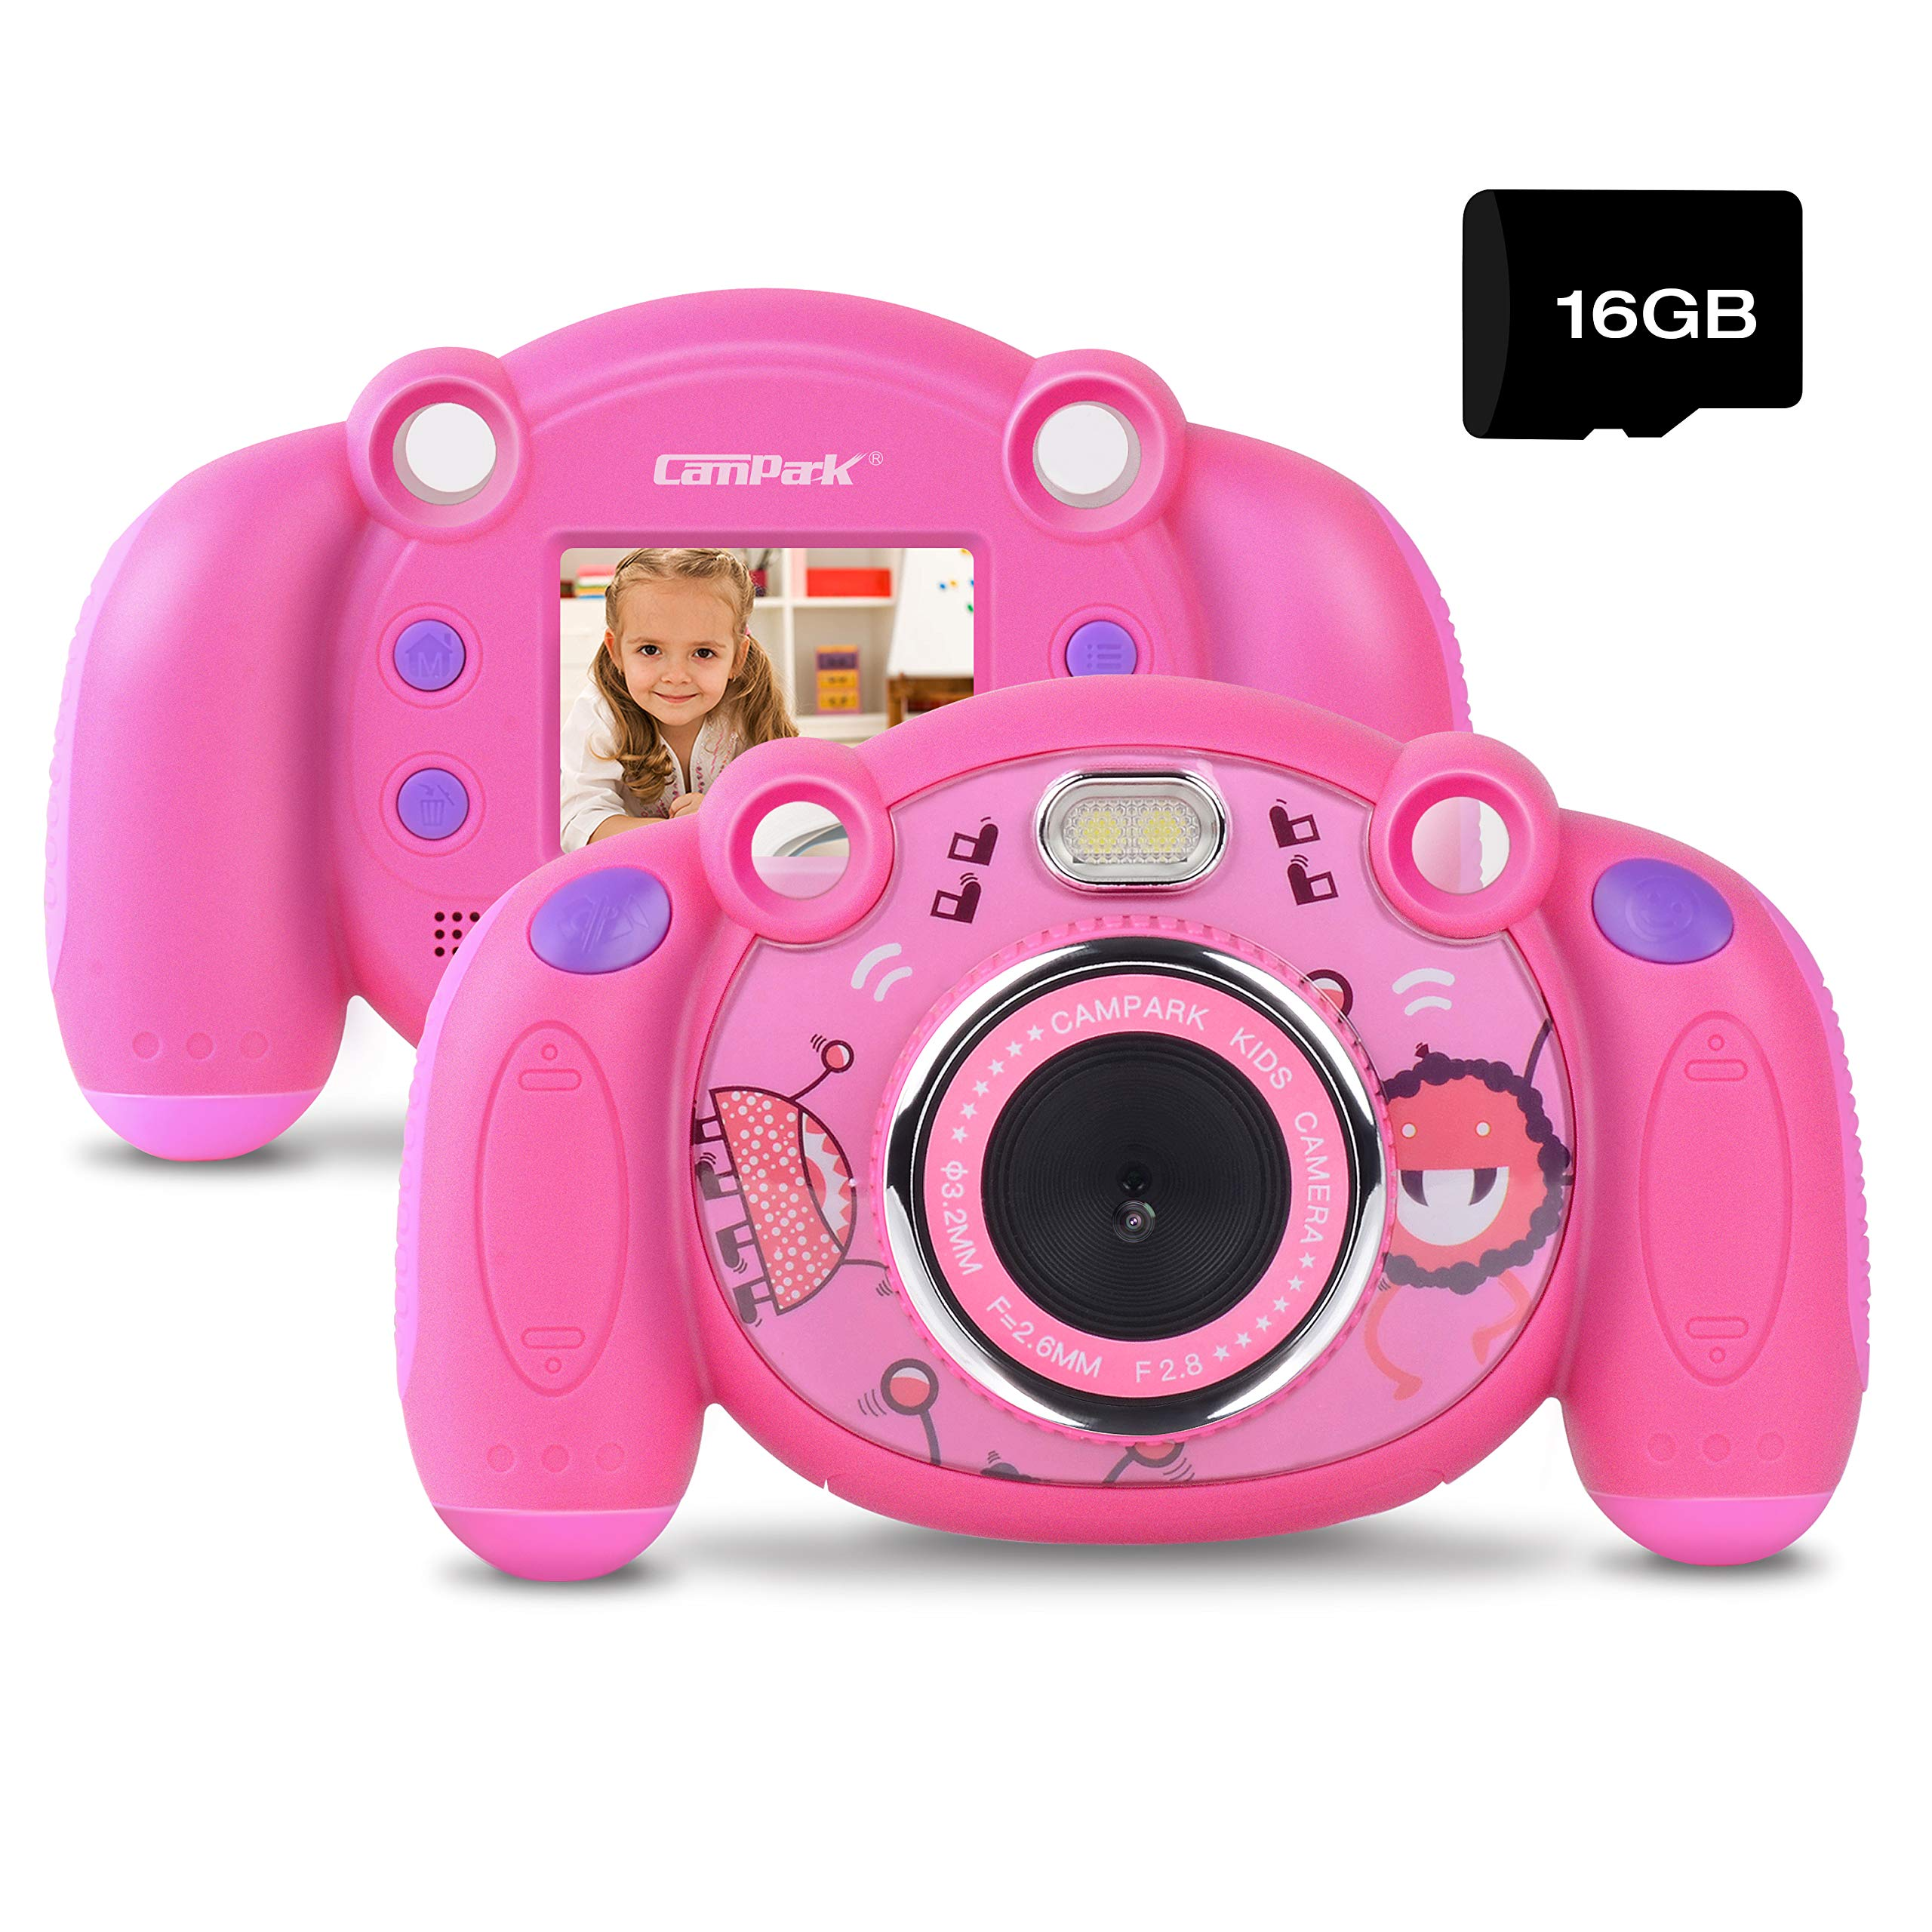 Campark Kids Camera, Mini Child Camcorder with HD LCD Display 16GB Memory Card for Girls Pink Great Birthday Gift by Campark (Image #1)